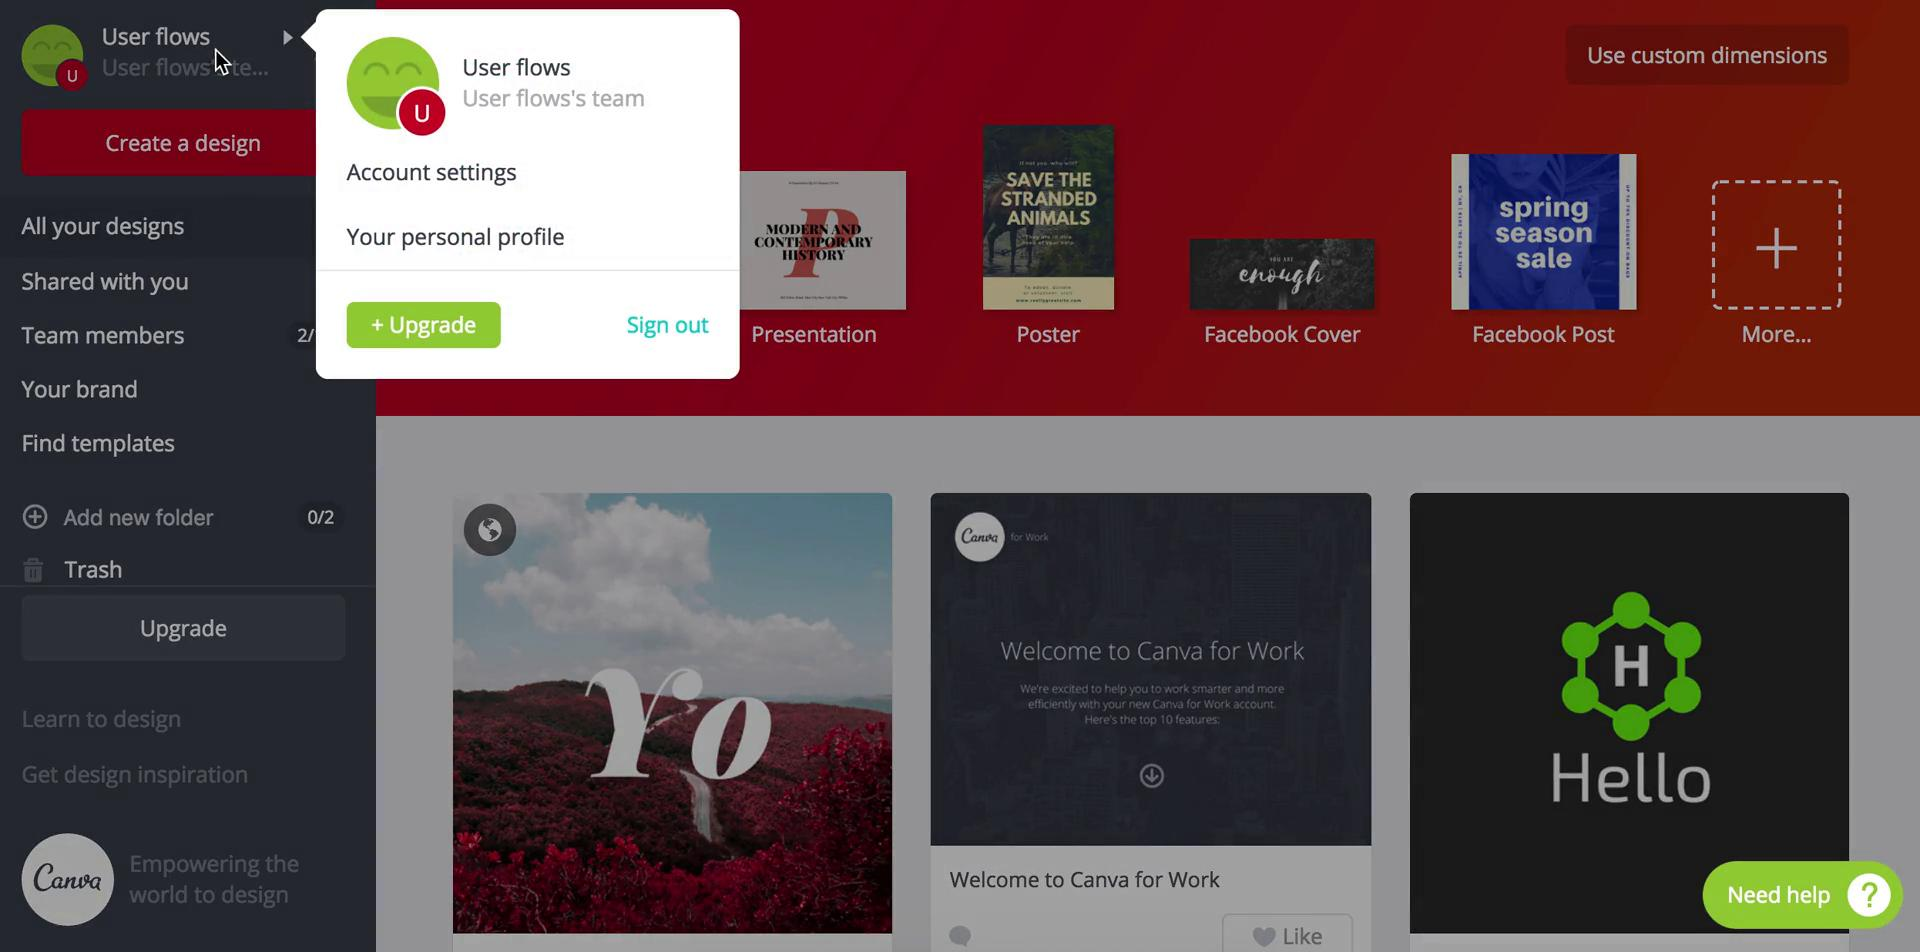 Settings on Canva video screenshot